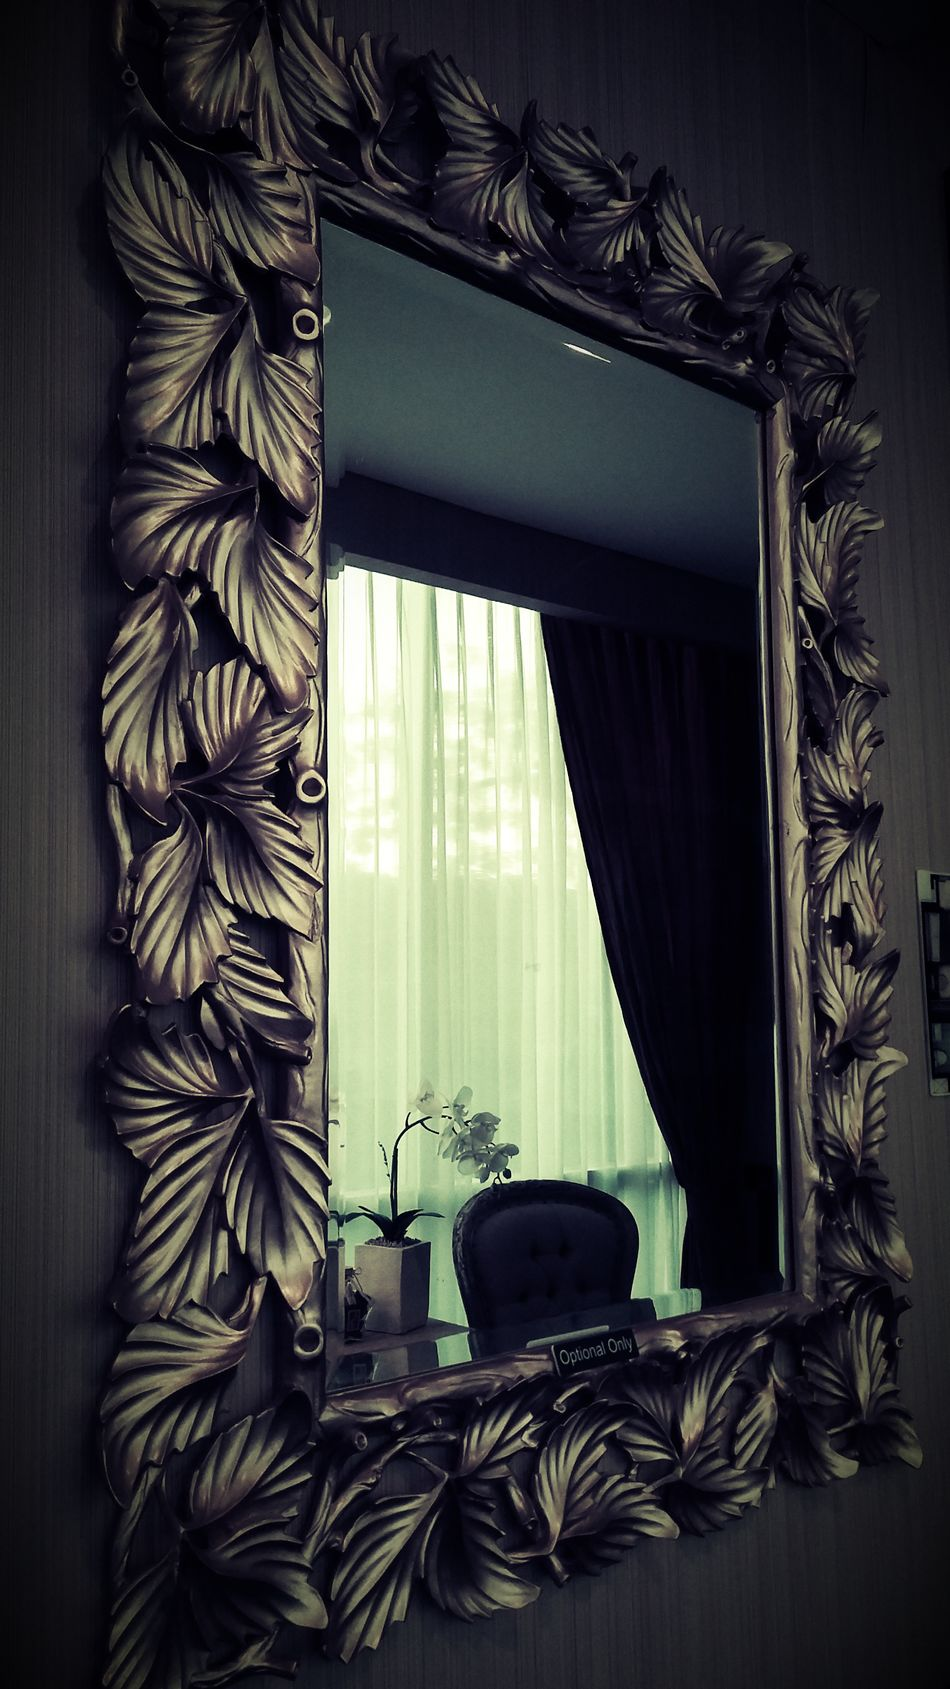 Mirror mirror on the wall who is the mist pretty of all... Light And Shadow My Corner Break The Dawn Mirror Mirror Reflection